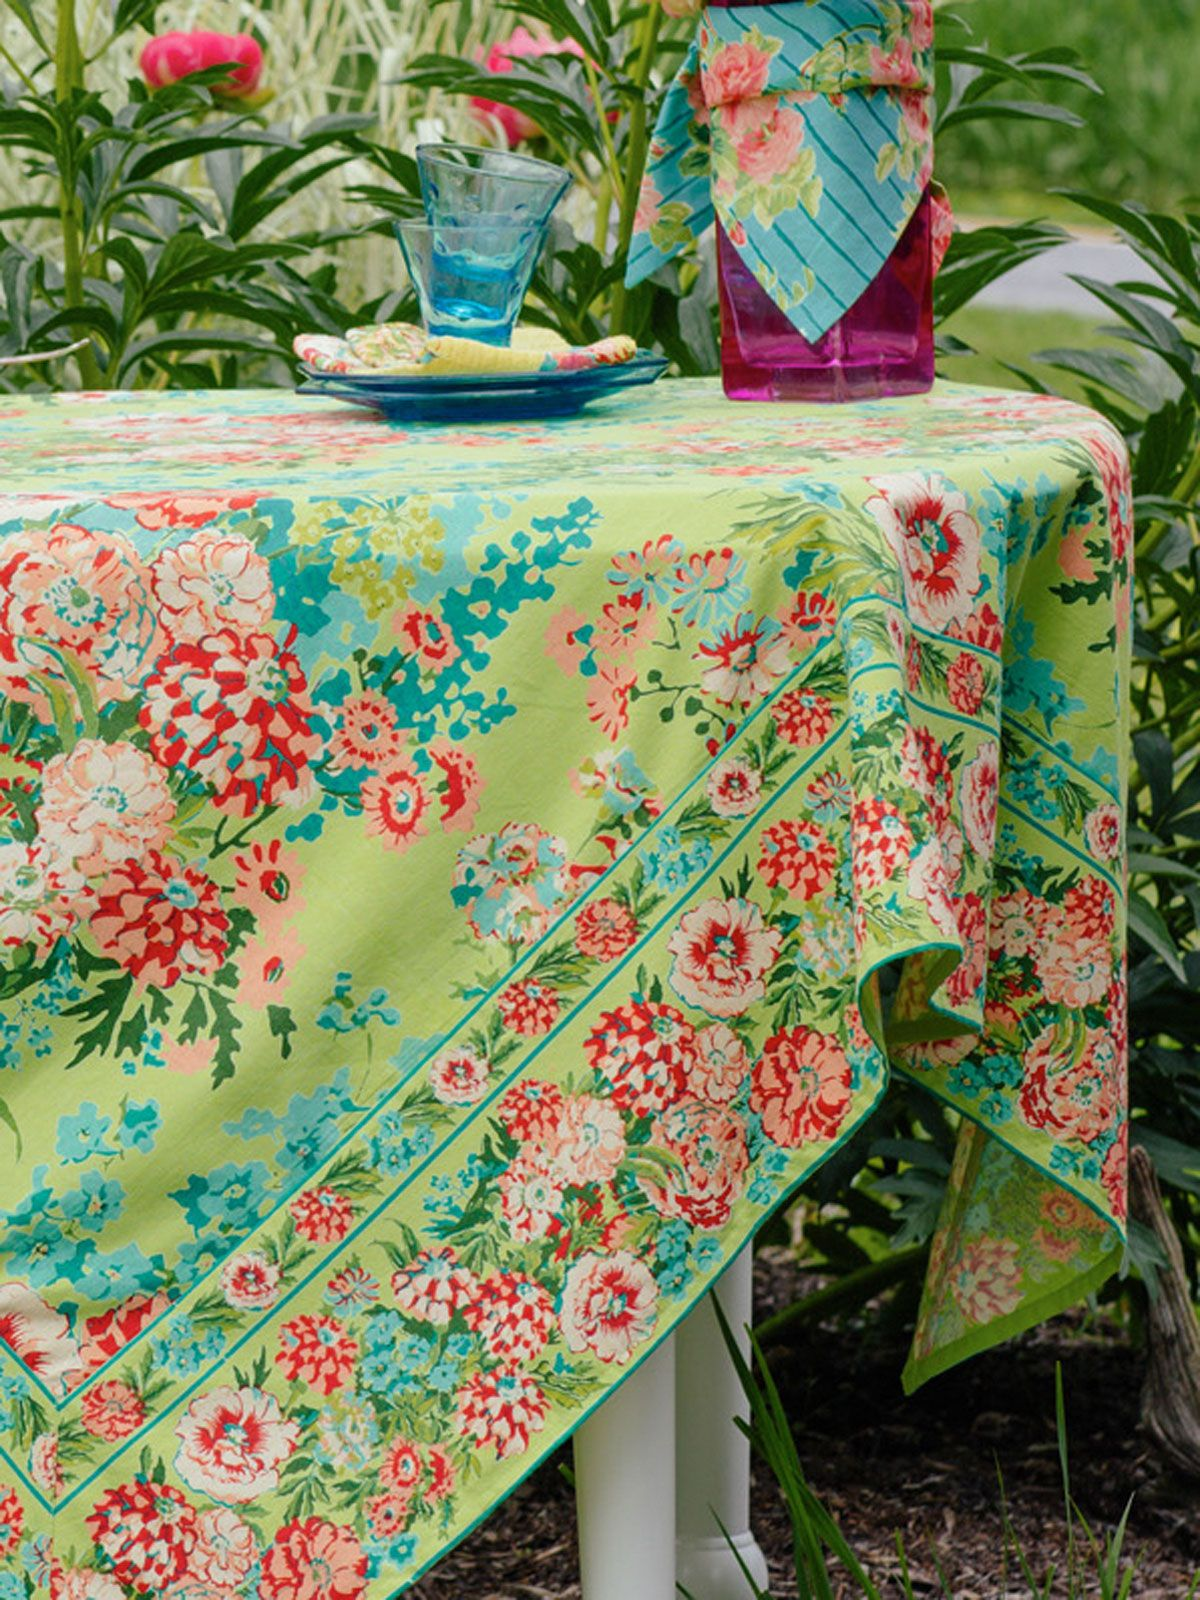 Zinnia Garden Tablecloth Lime Collections Color Garden Beautiful Designs By April Cornell Table Cloth Spring Table Settings Green Decor